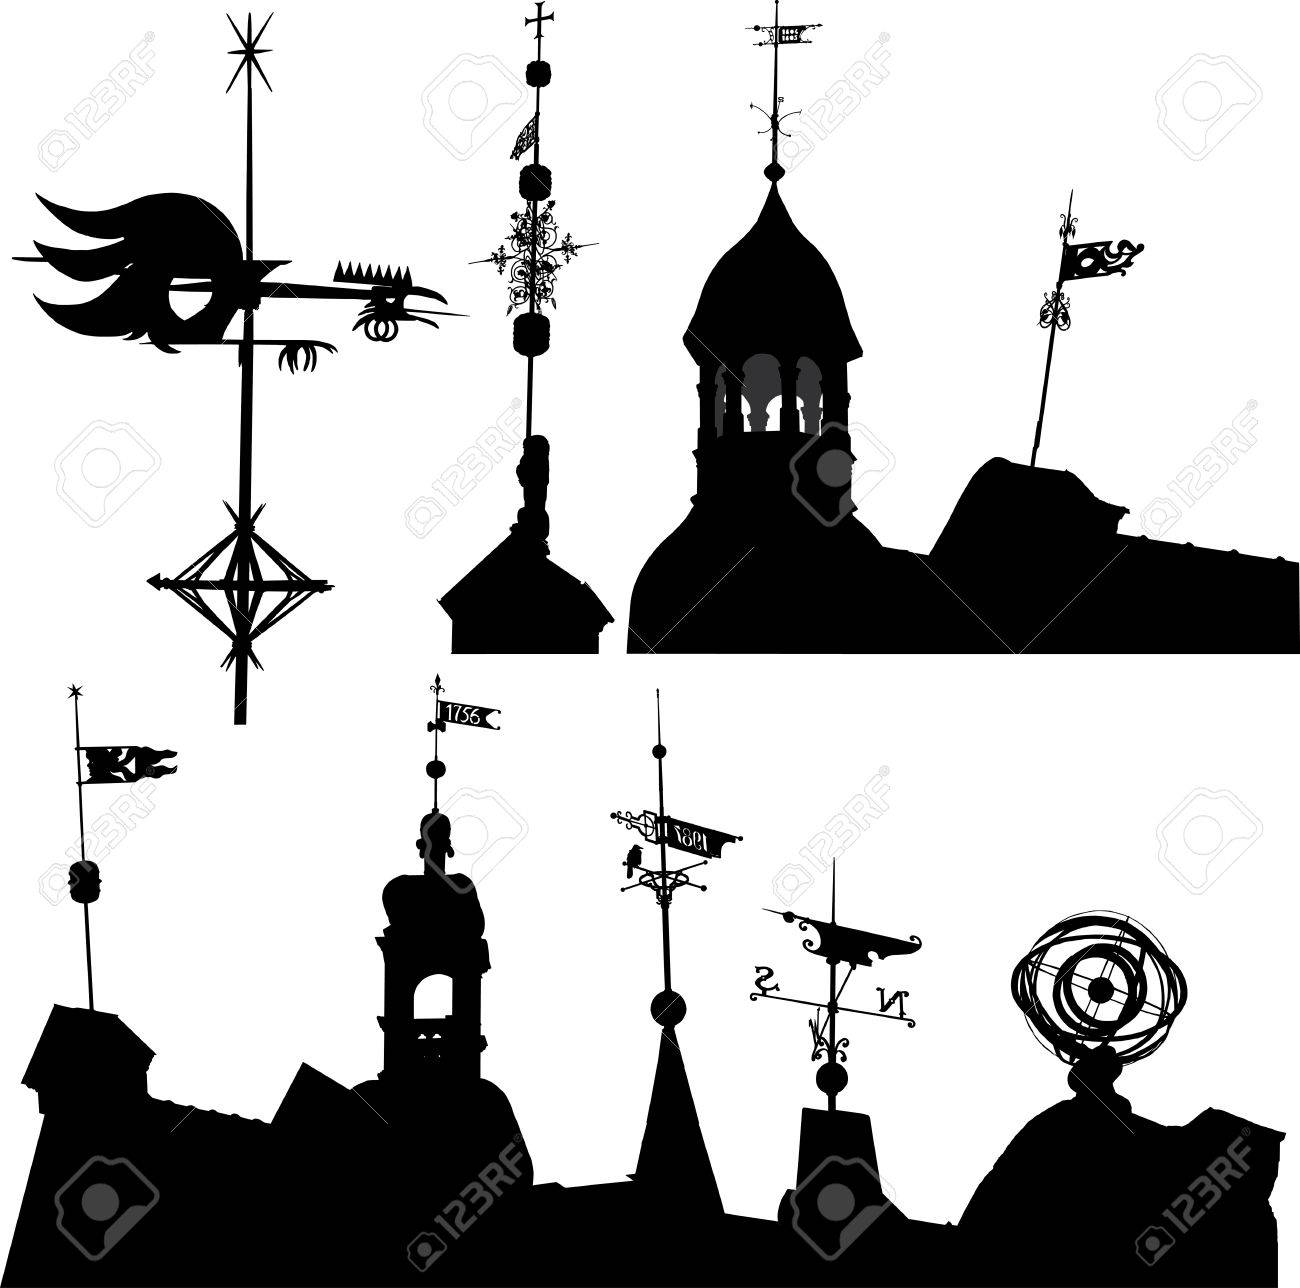 Set of vector silhouettes of weather vanes and turrets Stock Vector - 5522577